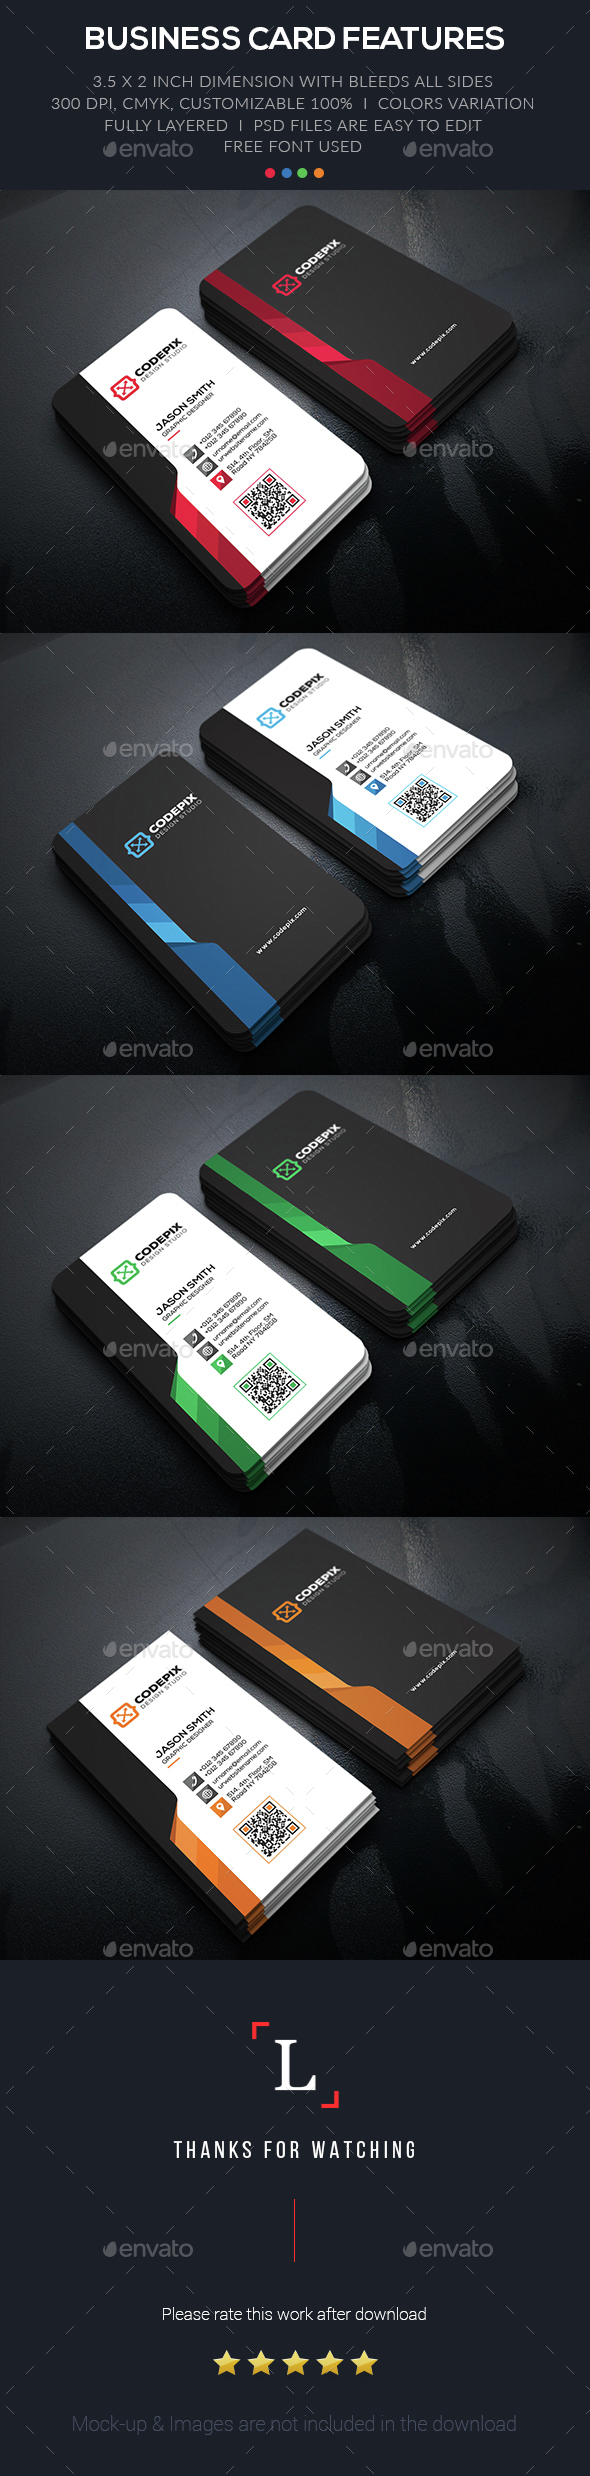 Creative Business Card - Business Cards Print Templates